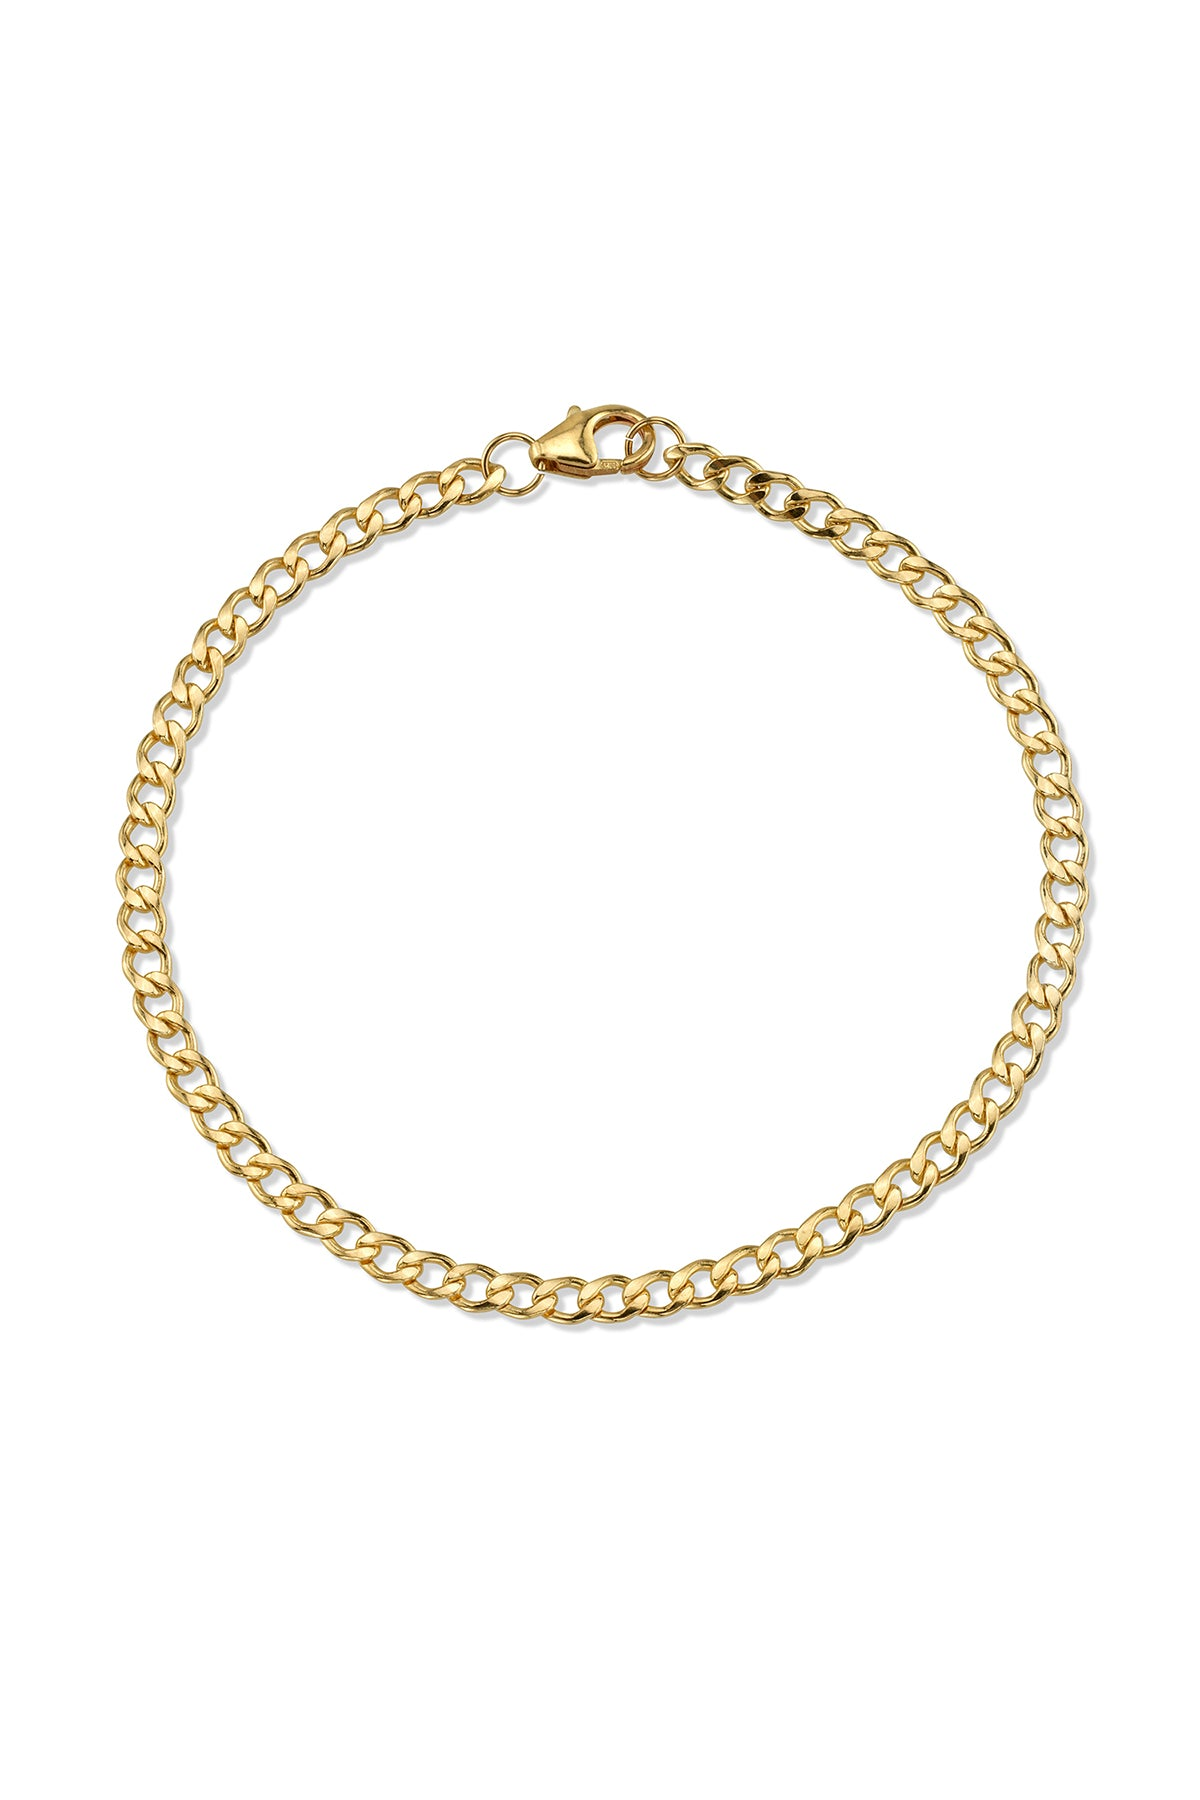 CUBAN BRACELET BY SLOAN